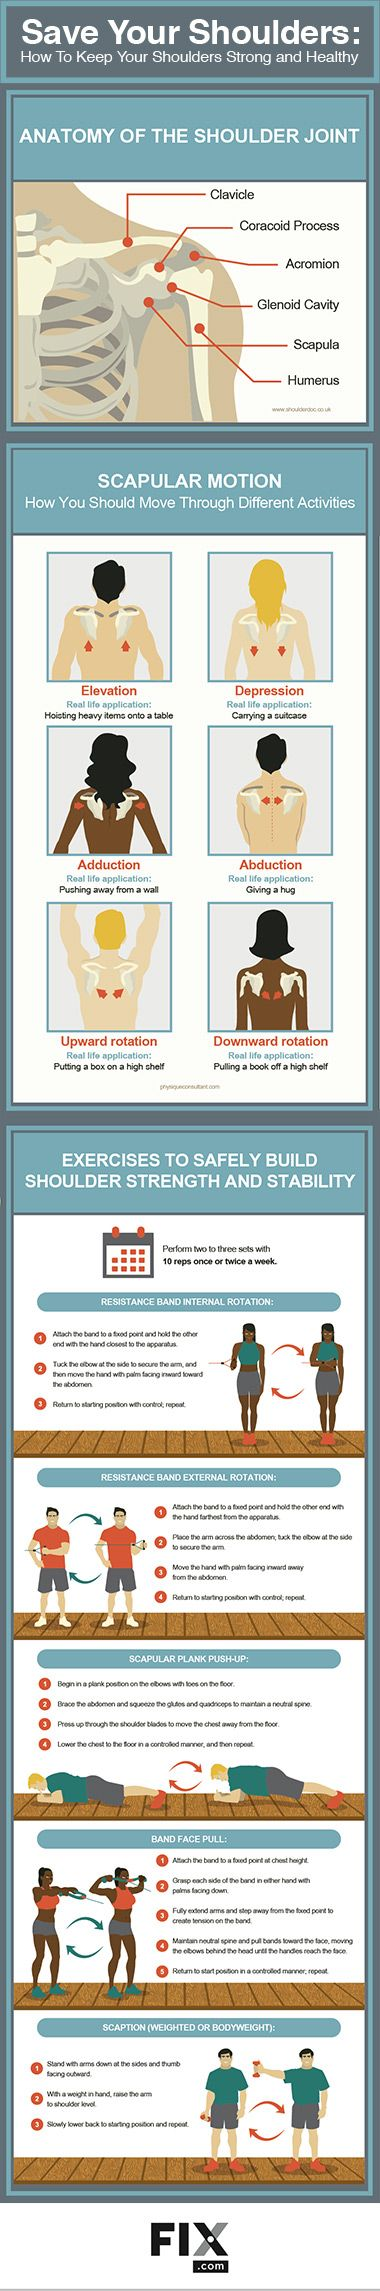 Learn how to improve shoulder health and reduce future pain, strain, and injury.